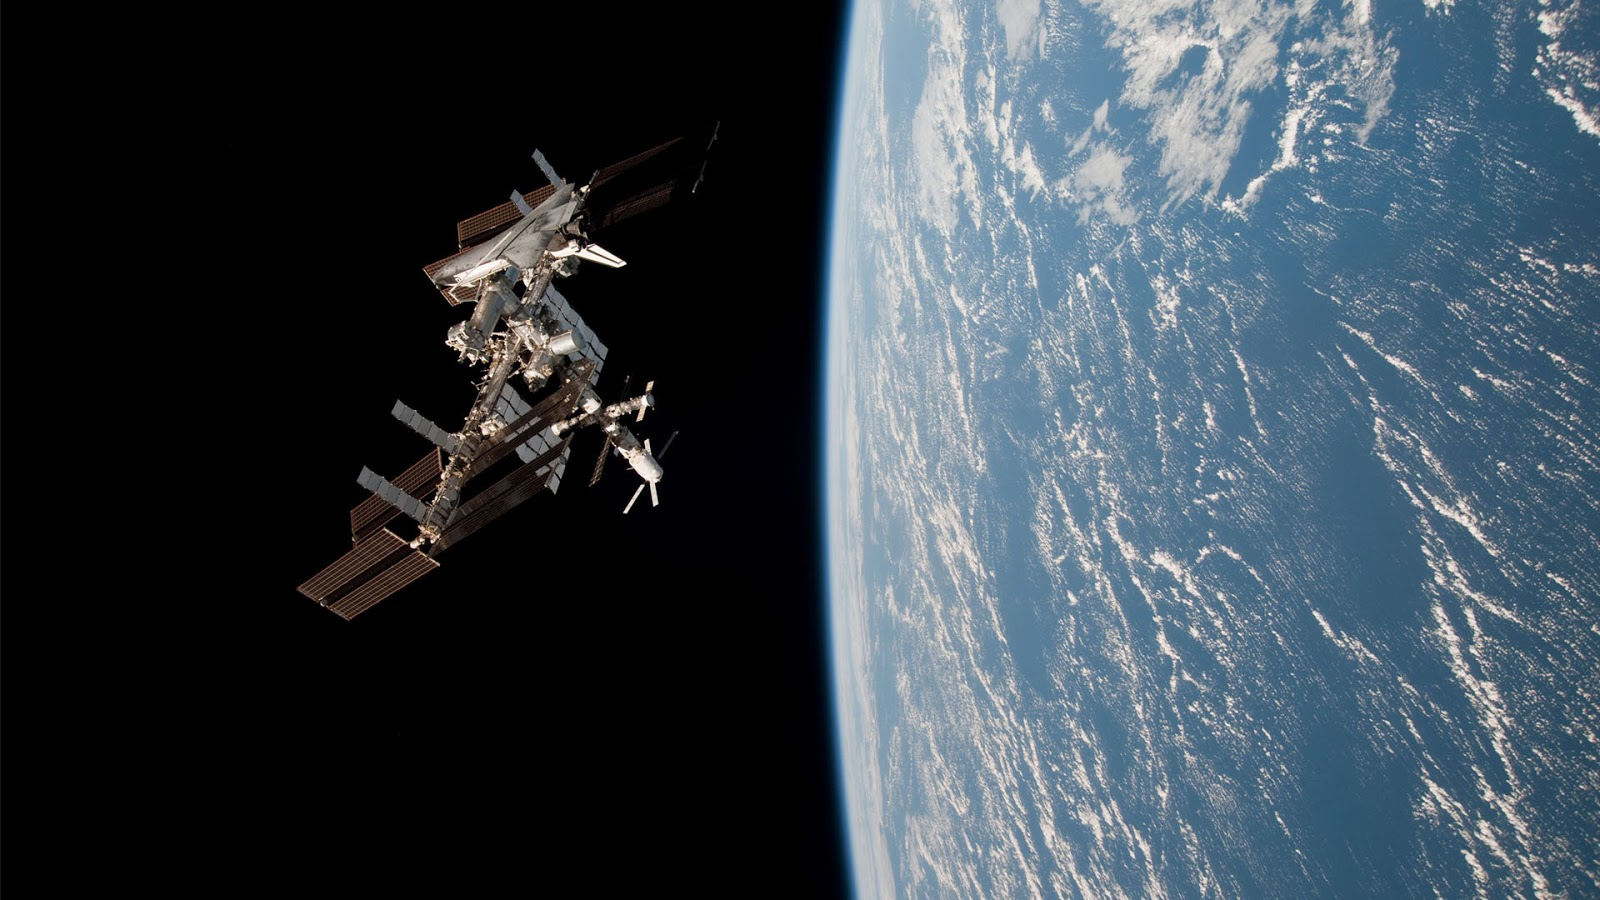 International space station hd wallpapers 1080p hd - Space station wallpaper ...